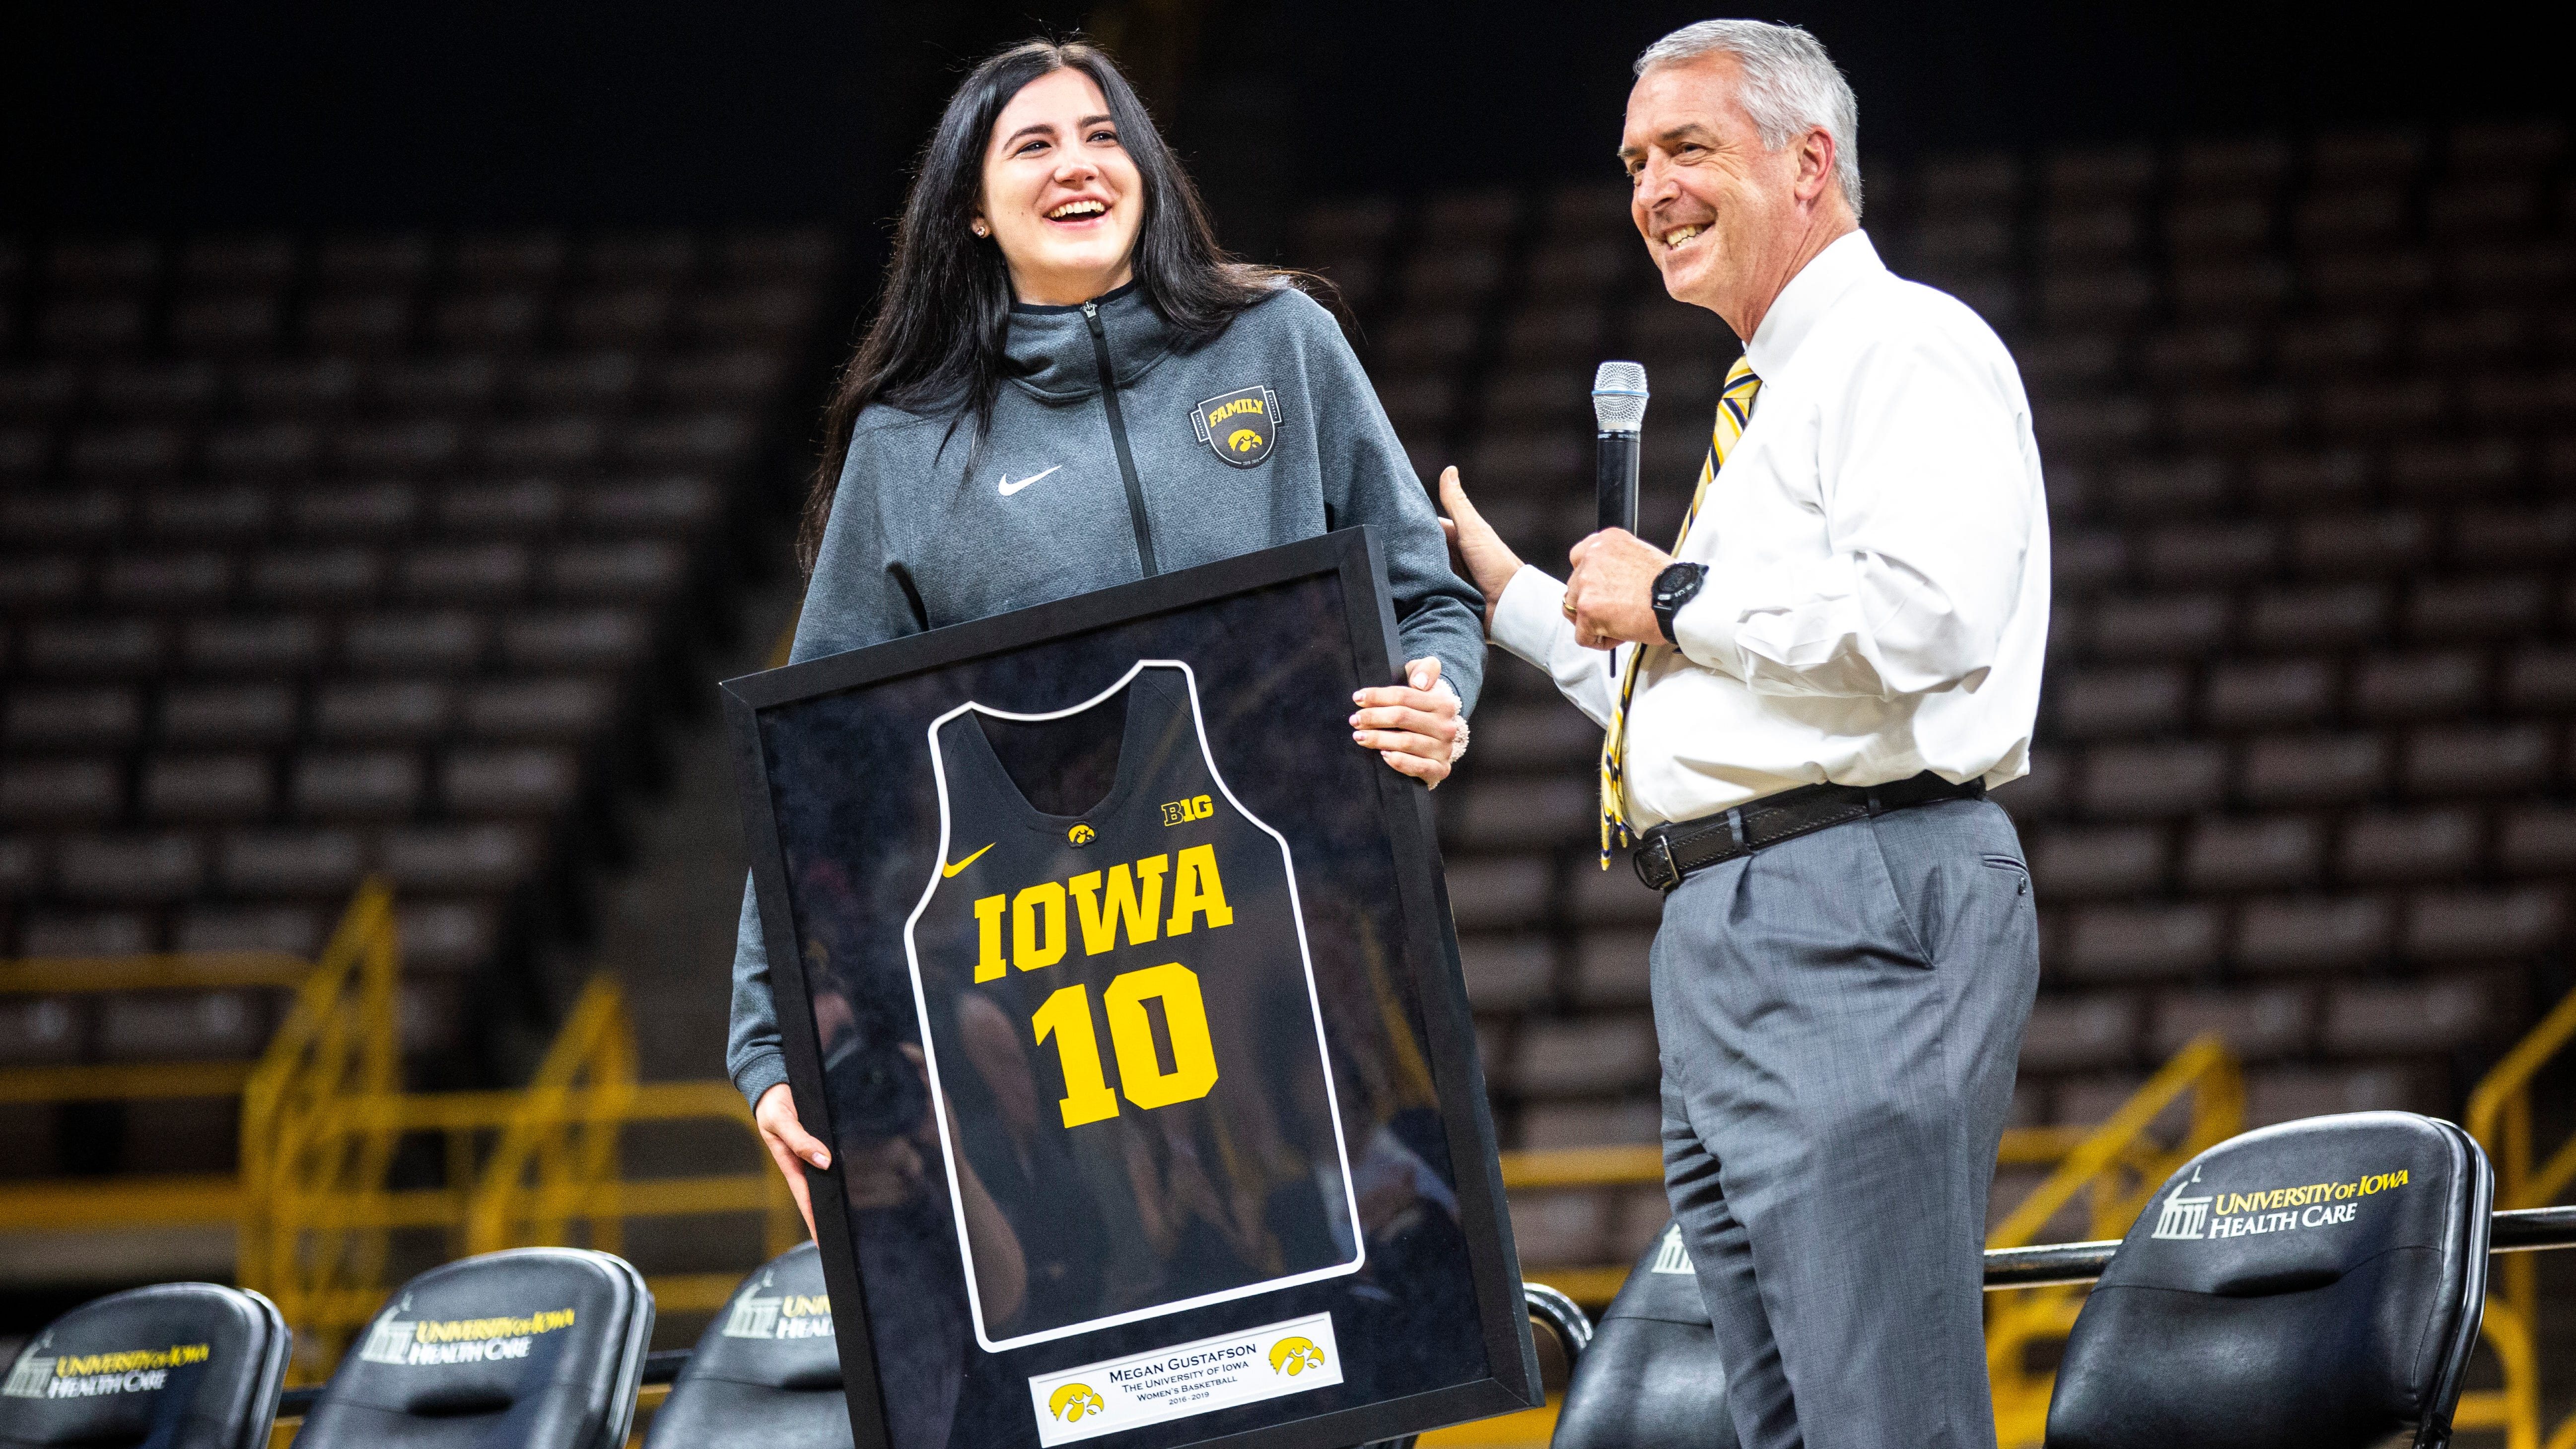 Iowa Hawkeyes women's basketball celebrates Elite Eight season